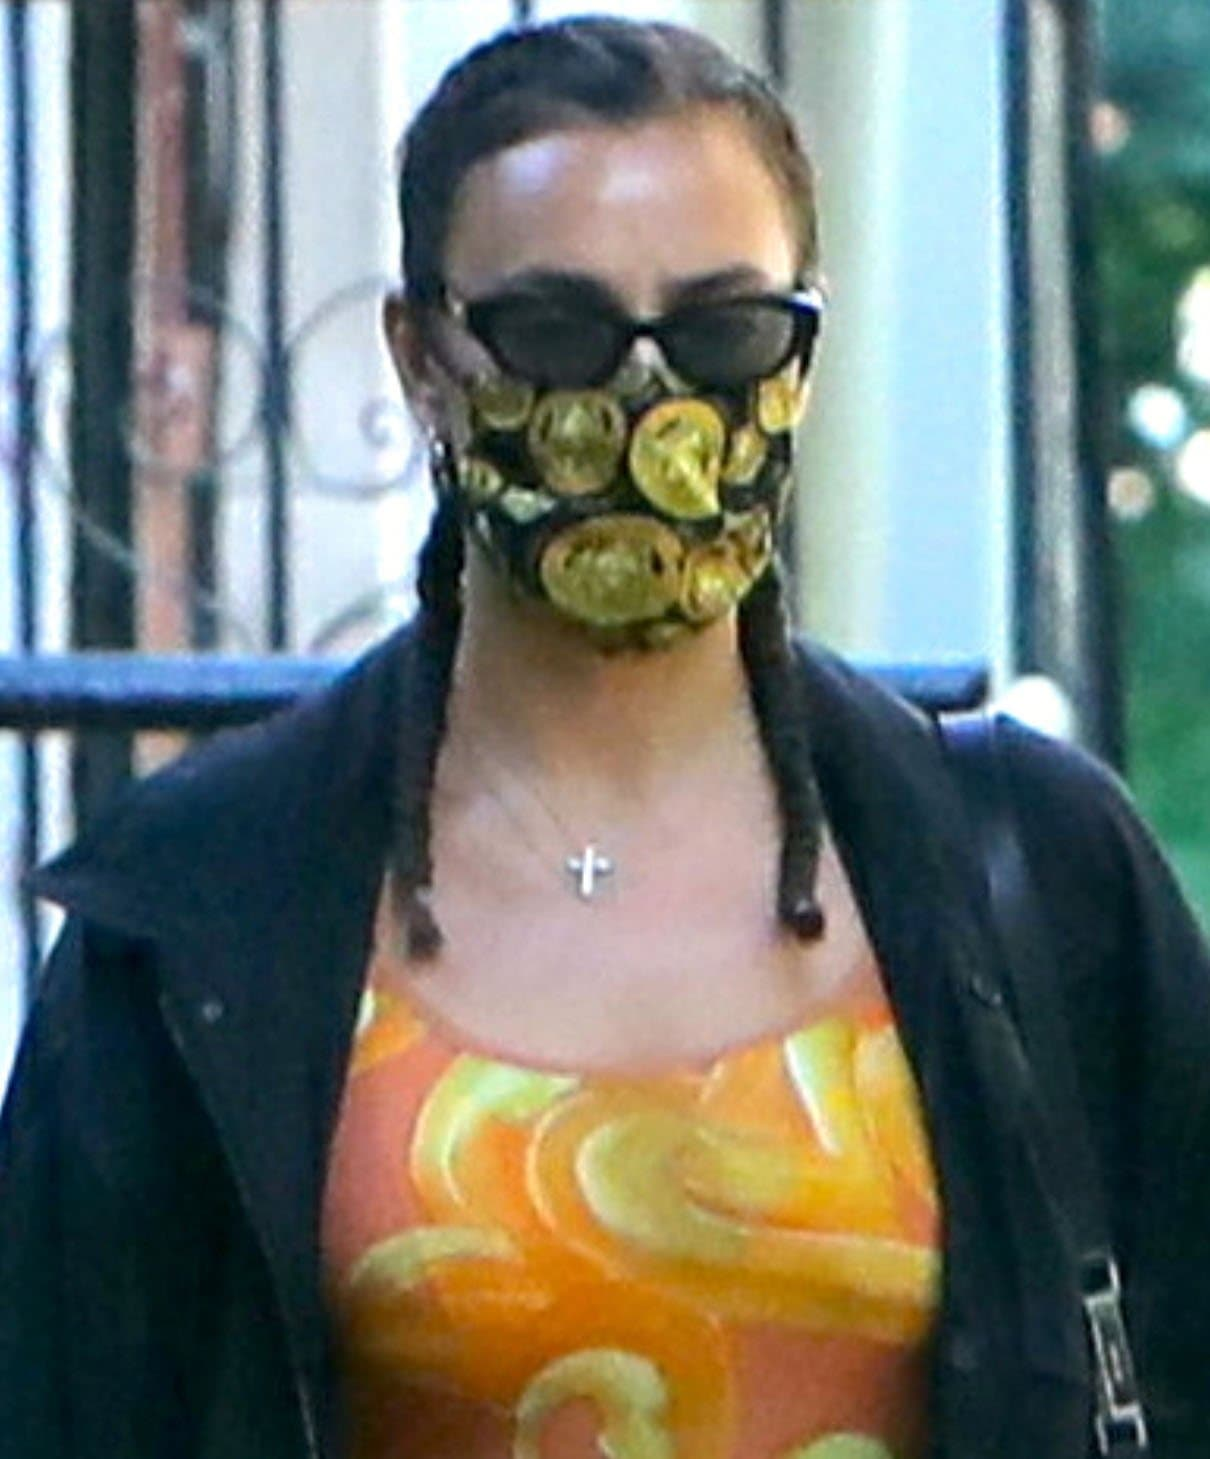 Irina Shayk wears cornrows with braided pigtails and hides her face underneath her Poppy Lissiman sunnies and Versace face mask